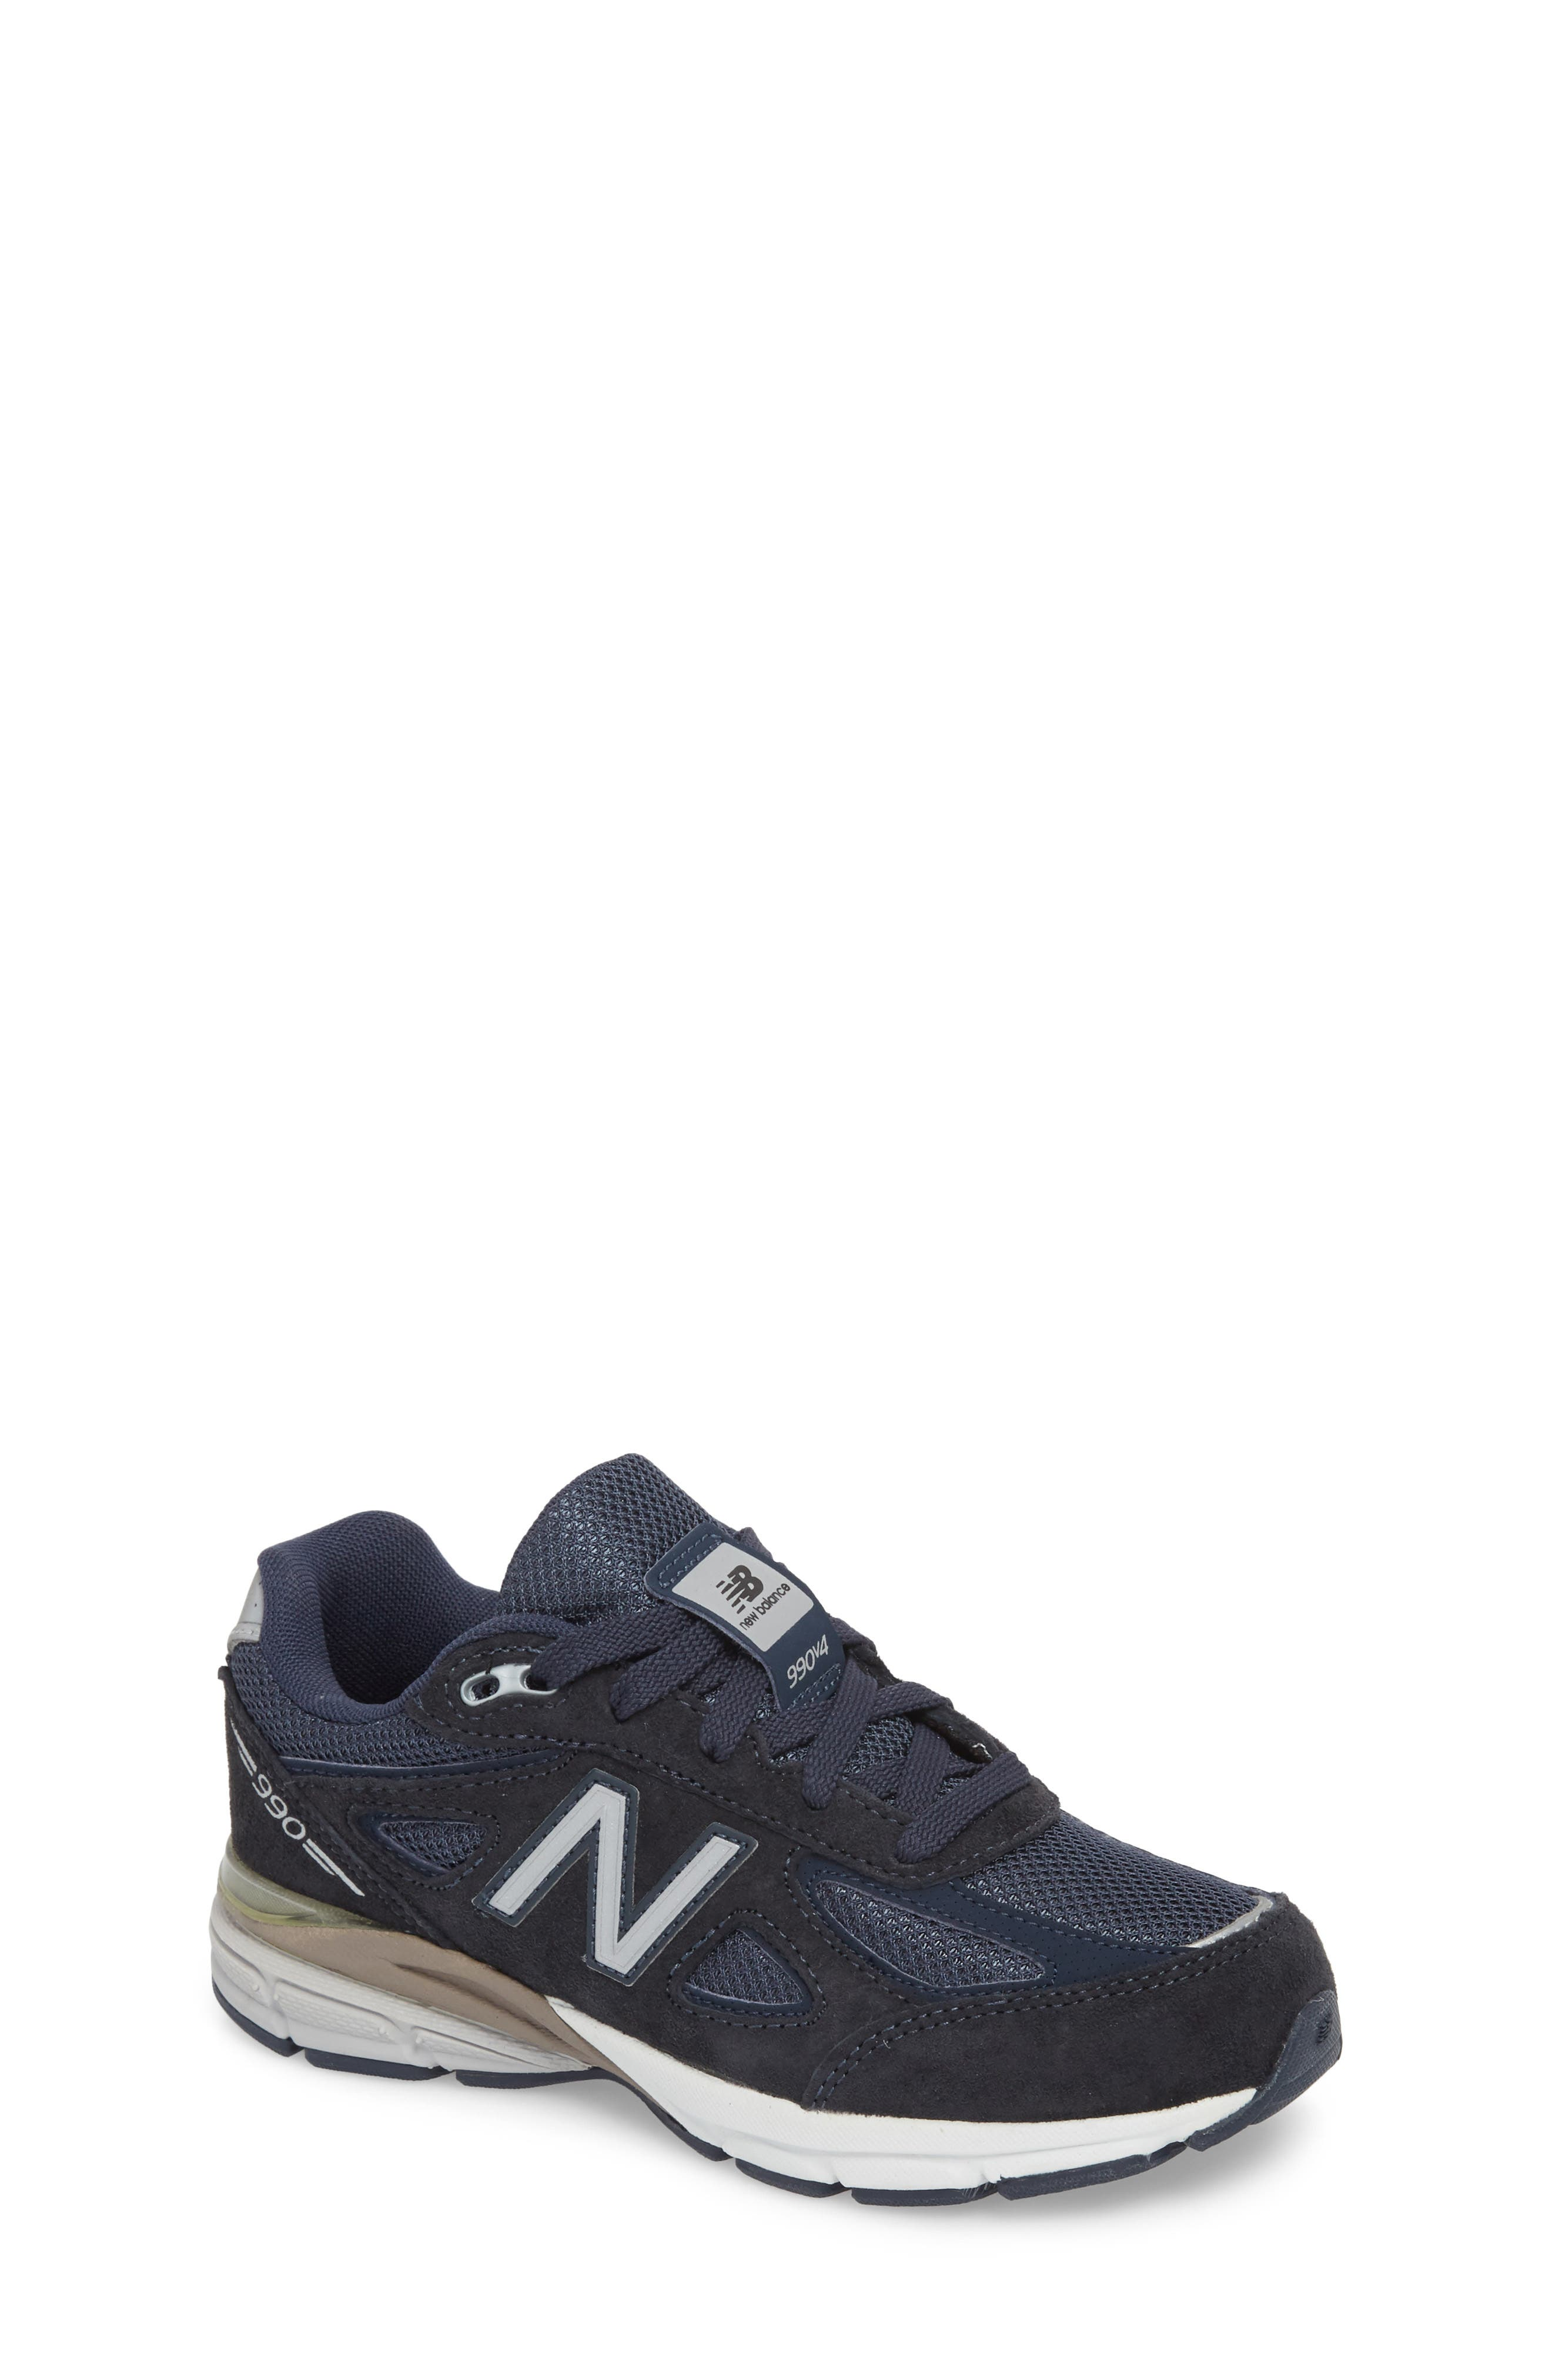 990 Sneaker,                         Main,                         color, Navy